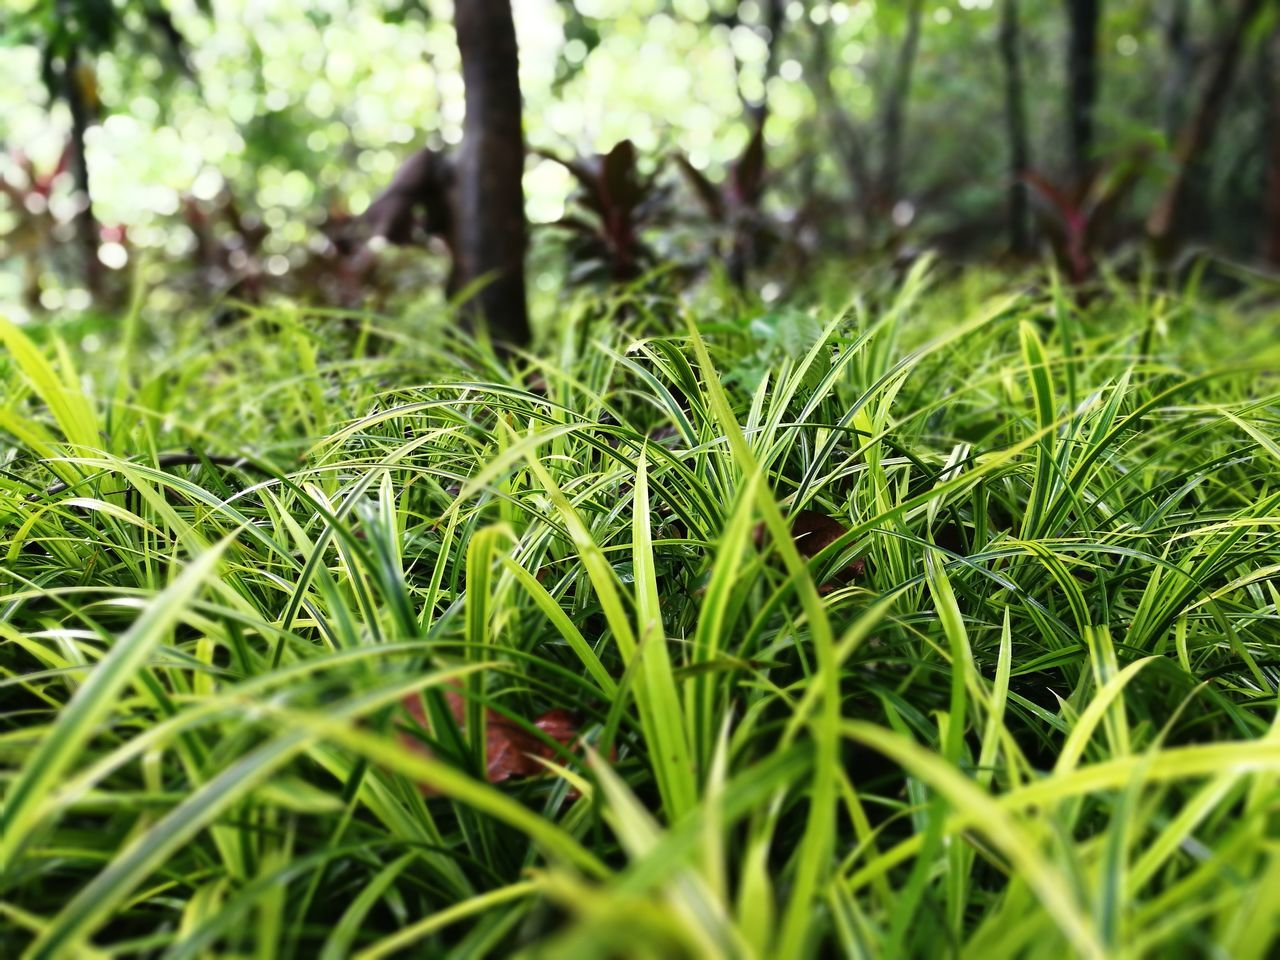 Close, fresh and sharp! Grass Close-up Freshness Green Color Outdoors Beauty In Nature Nature